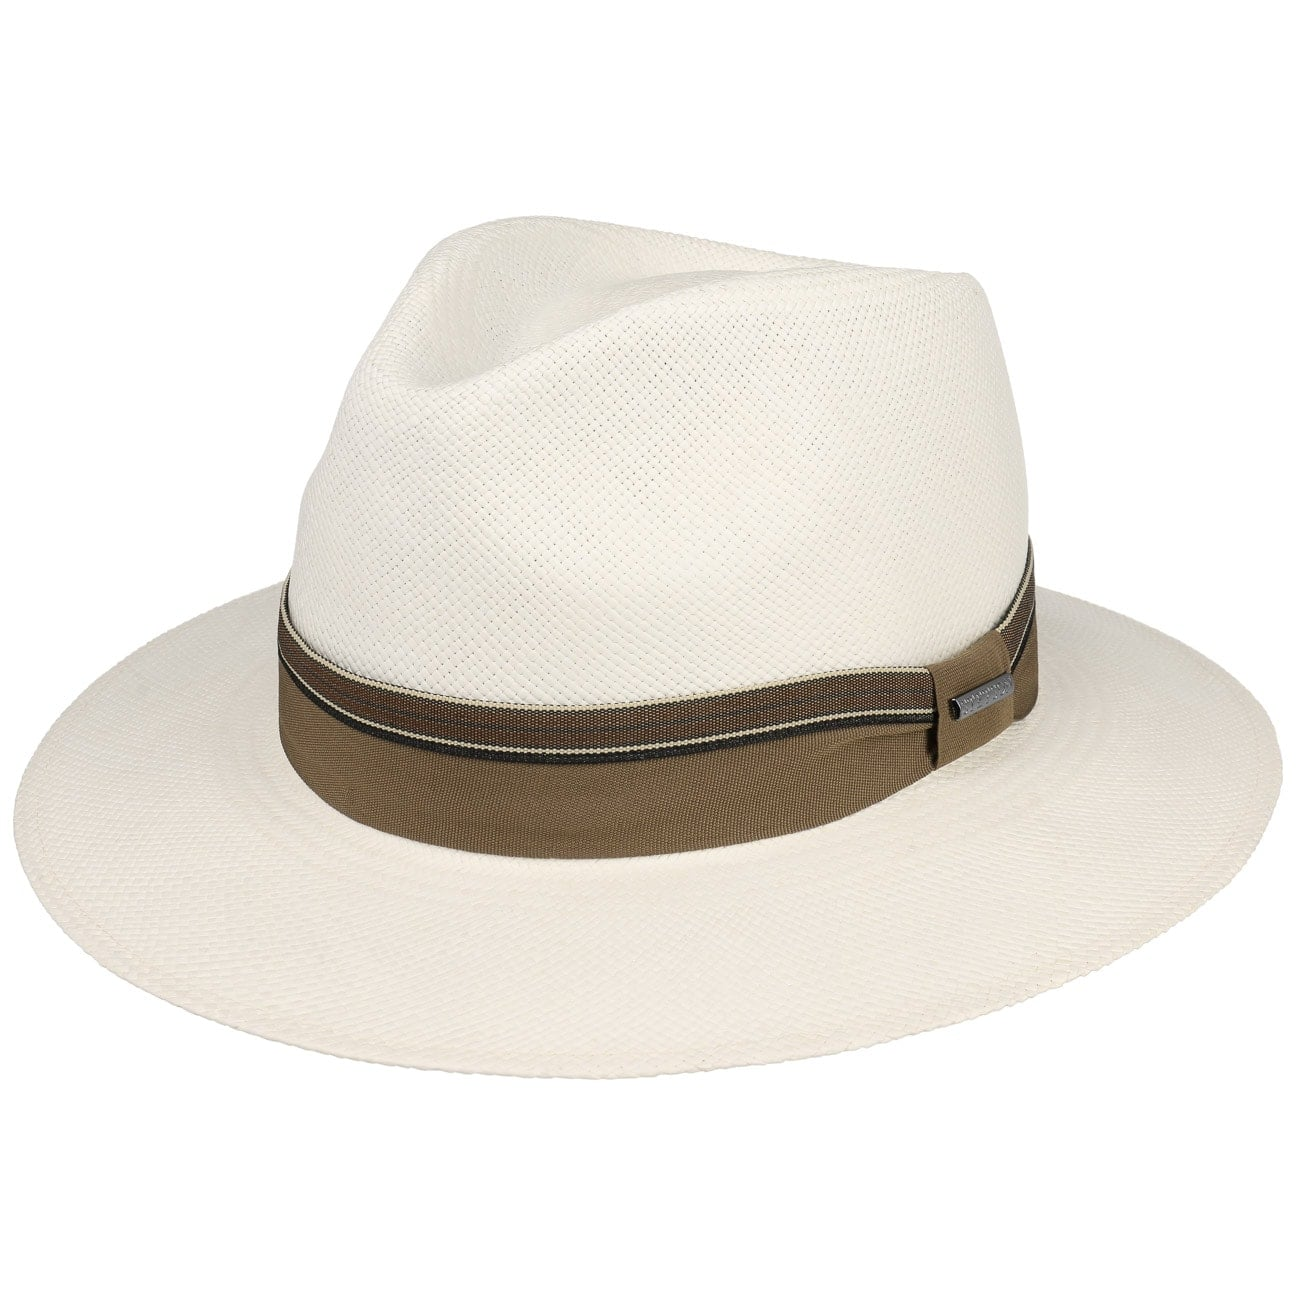 hot new products great prices cheap for sale Rushworth Traveller Panamastrohhut by Stetson